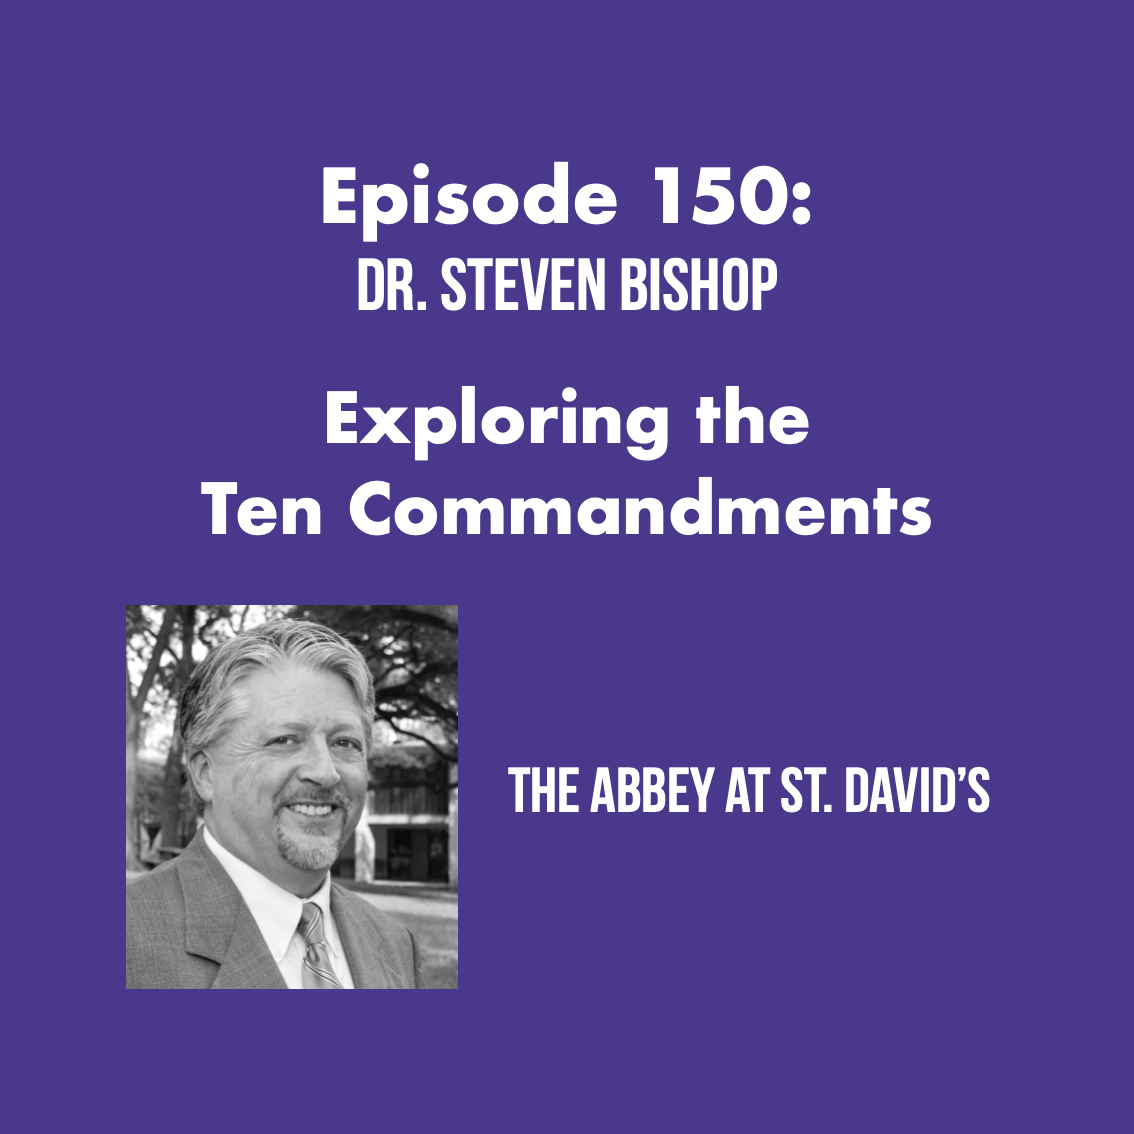 Episode 150: Exploring the Ten Commandments with Dr. Steven Bishop